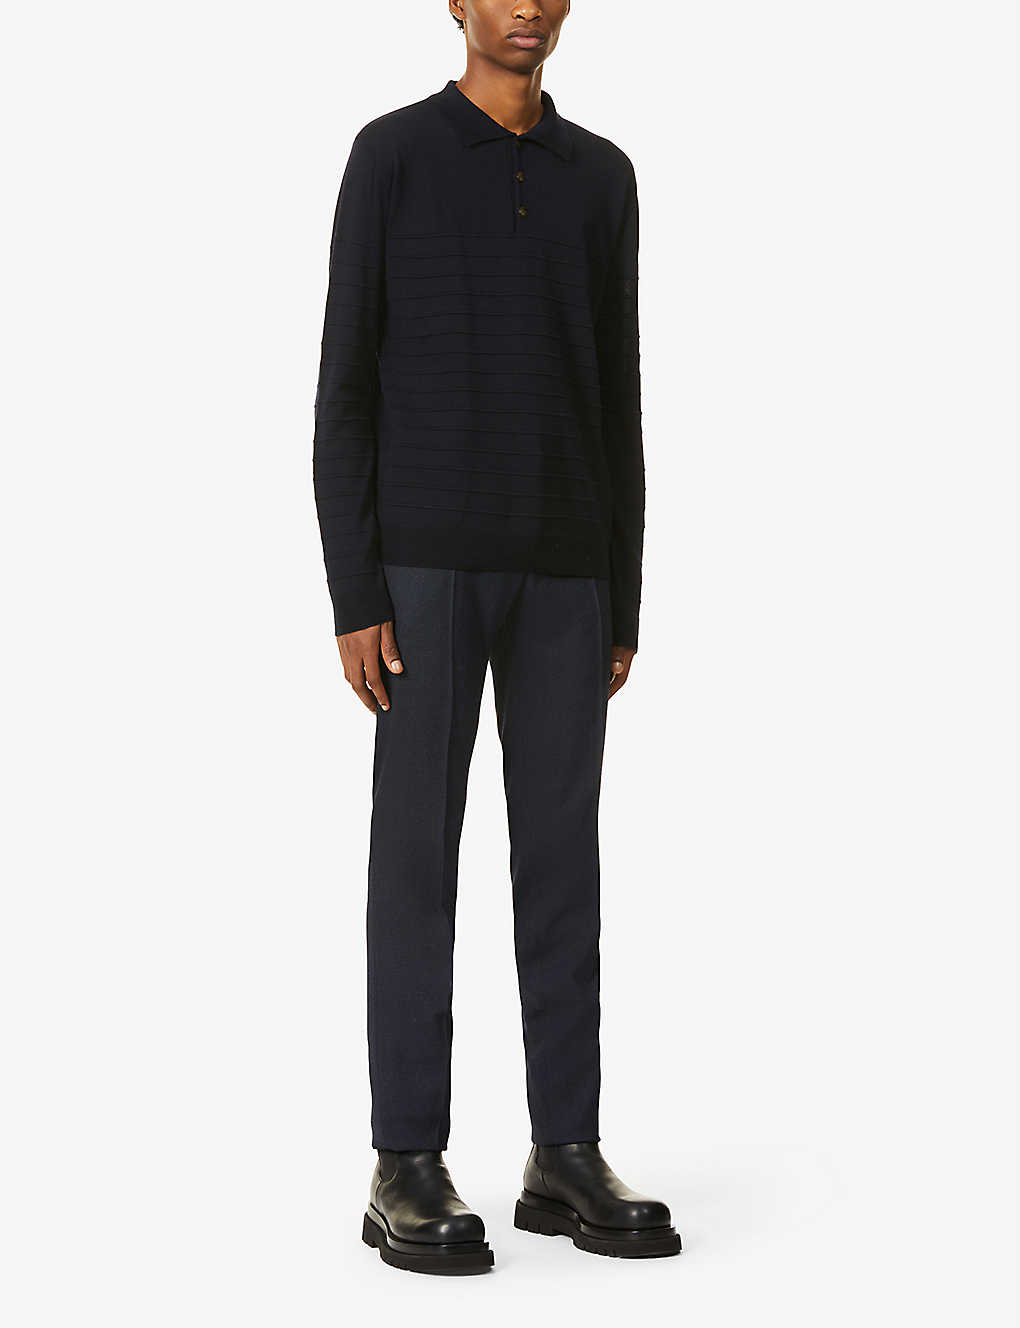 BARENA VENEZIA: Striped relaxed-fit wool polo jumper